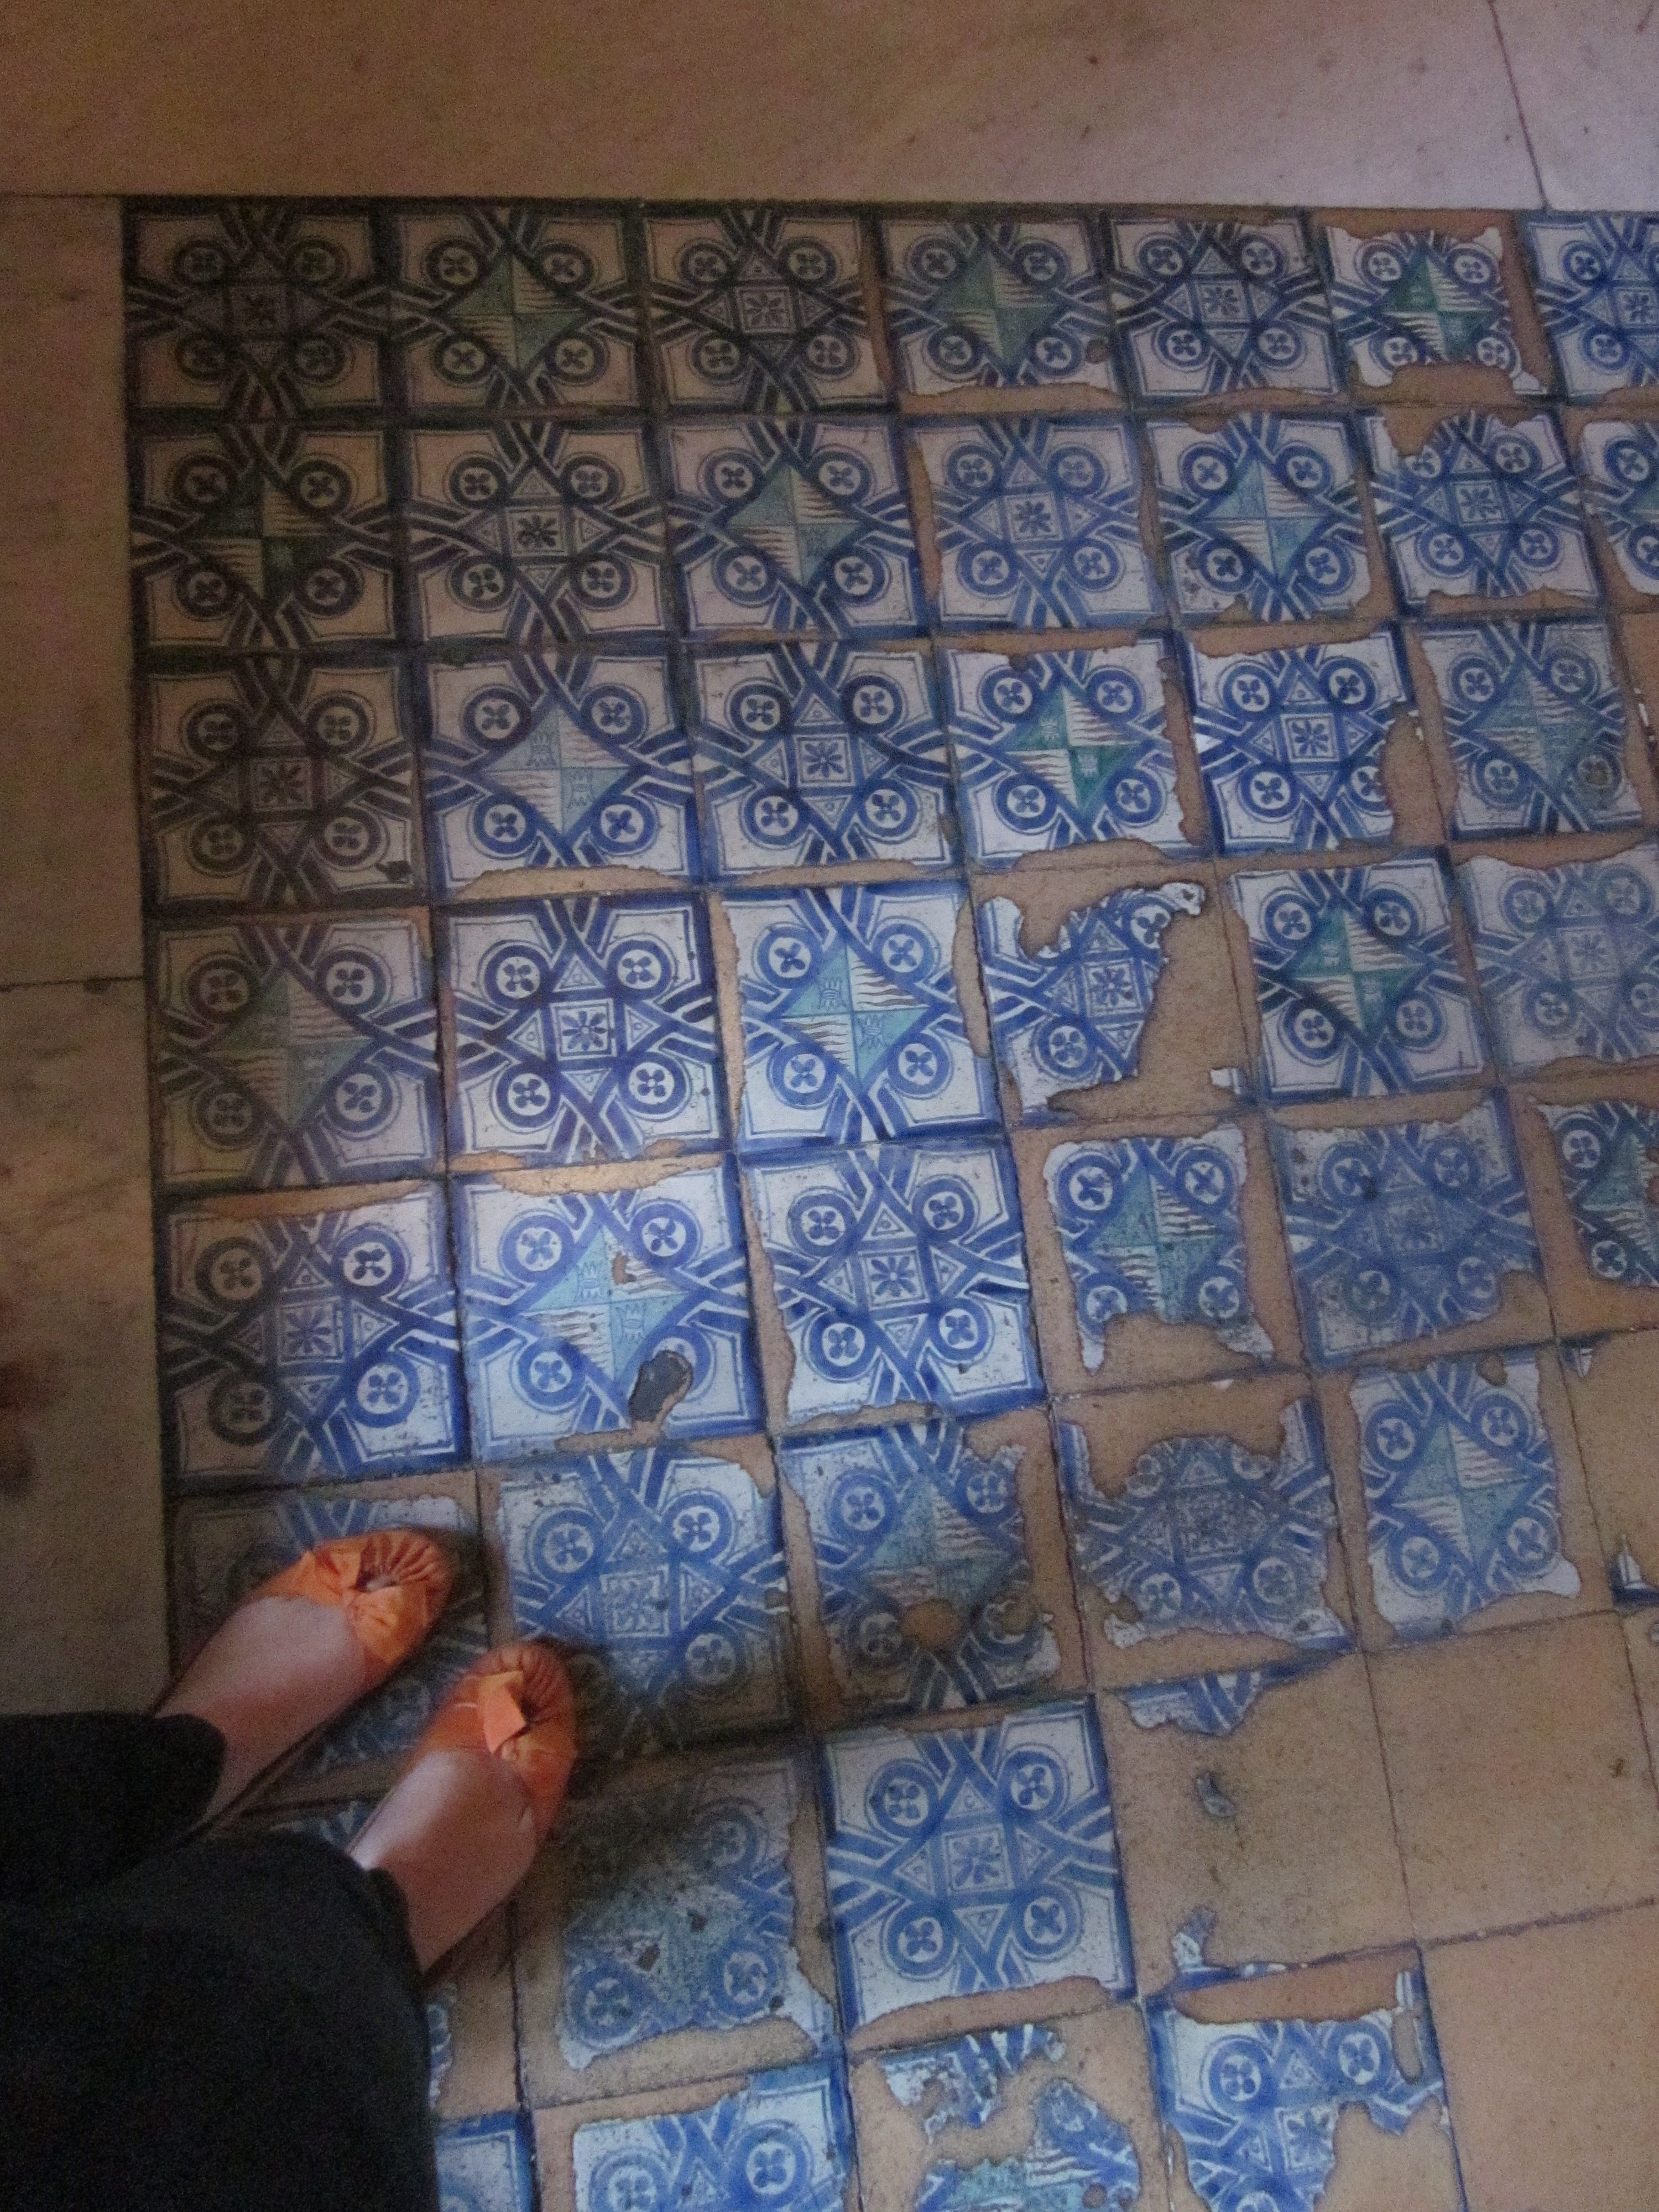 tiled floor inside the Vatican museums. | Old - Very Old Tiles ...